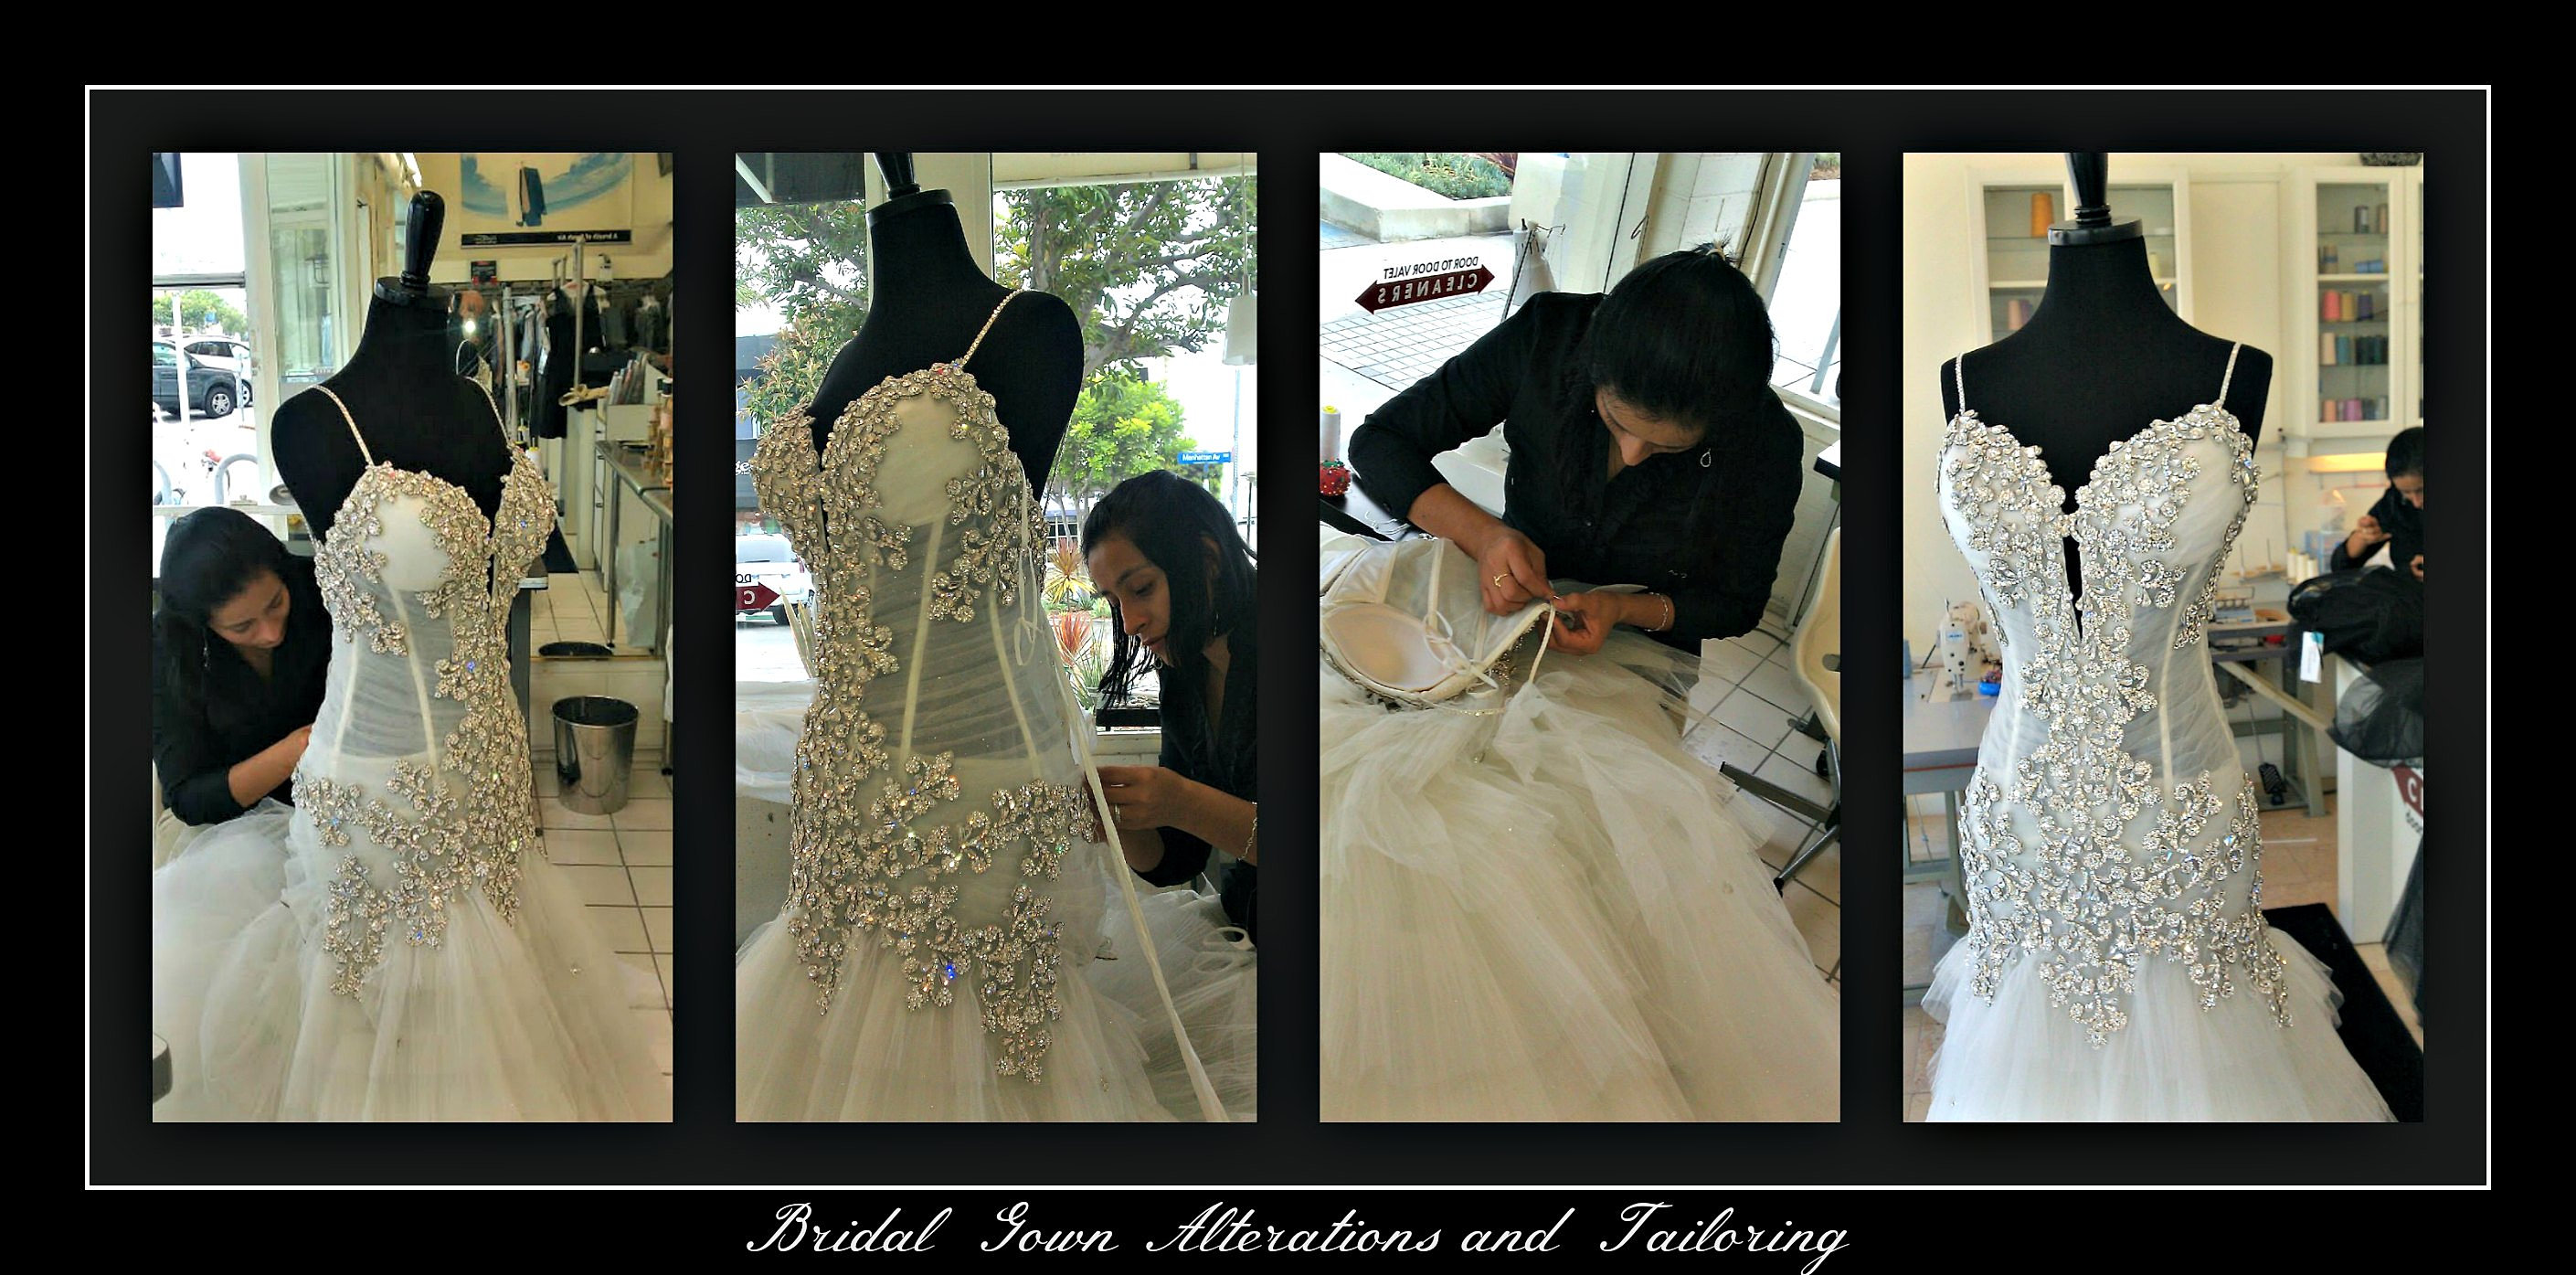 Levie 39 s dressmaking alterations for Wedding dress alterations indianapolis